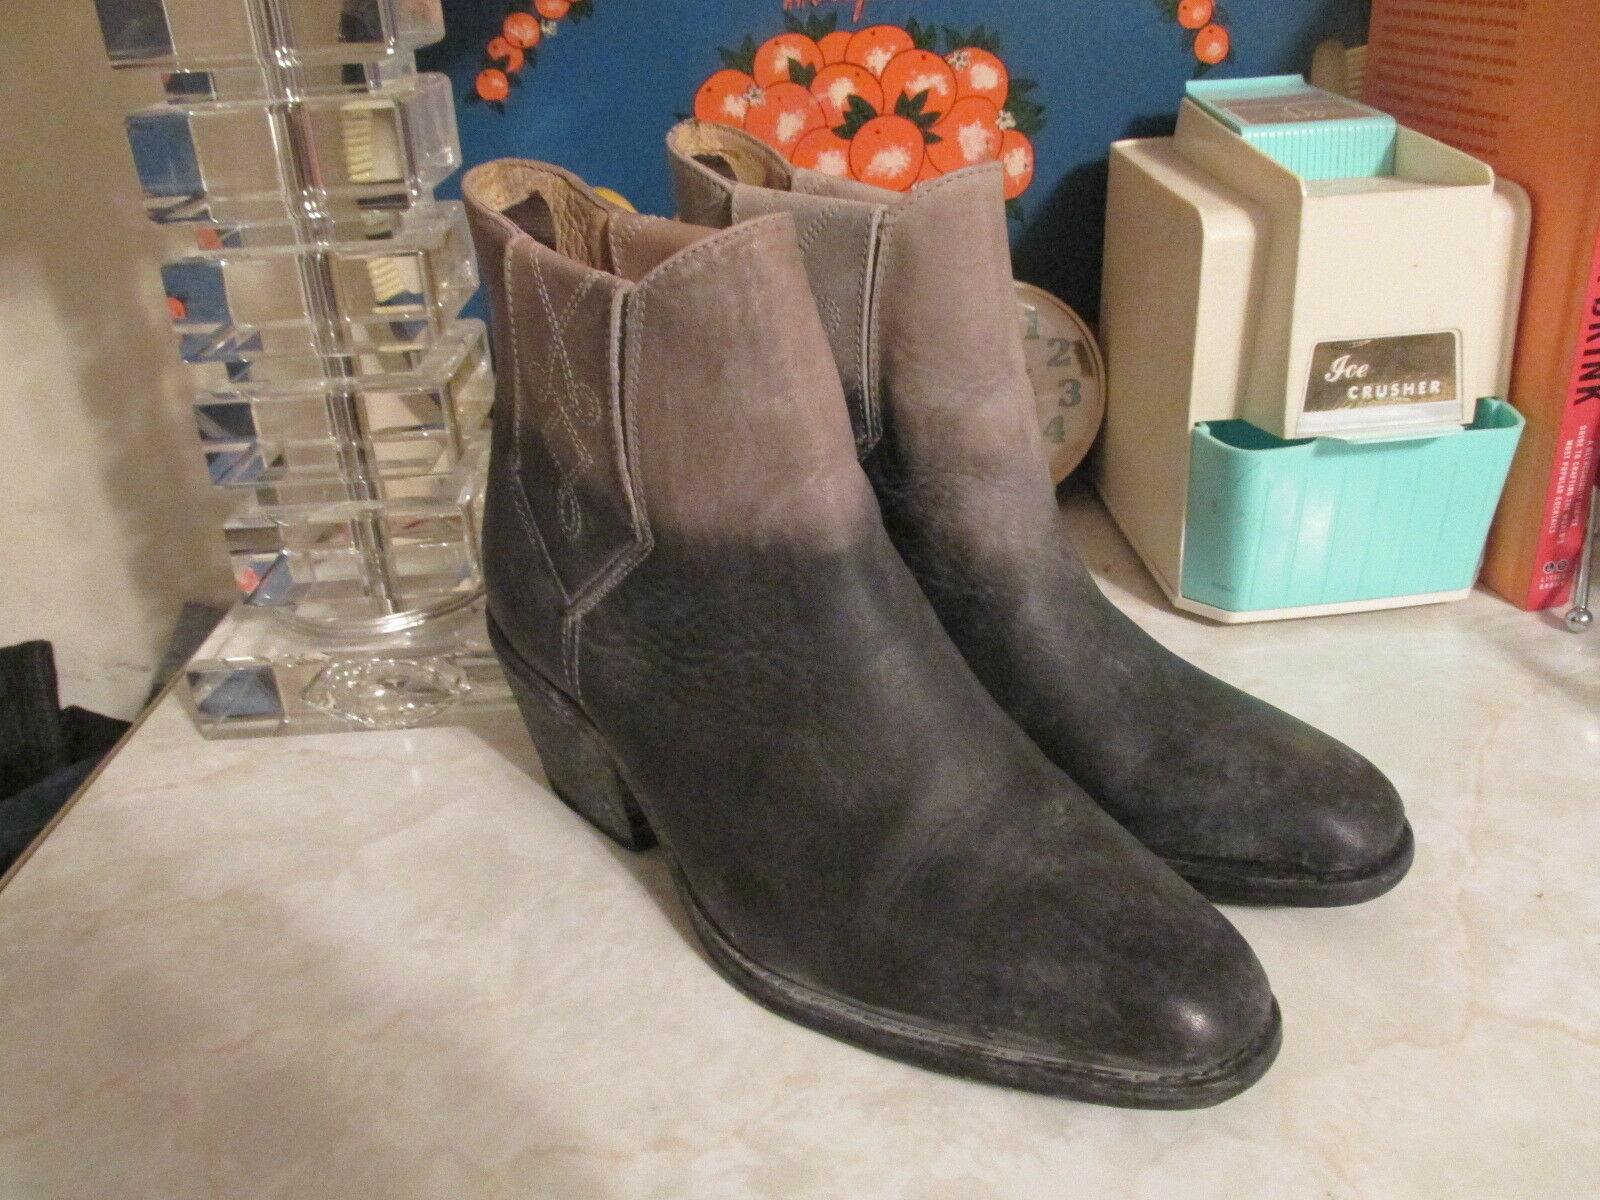 Faryl Robin + FREE PEOPLE Negro Williams Williams Williams (Dover) Tobillo botas Talla 10 3e751f